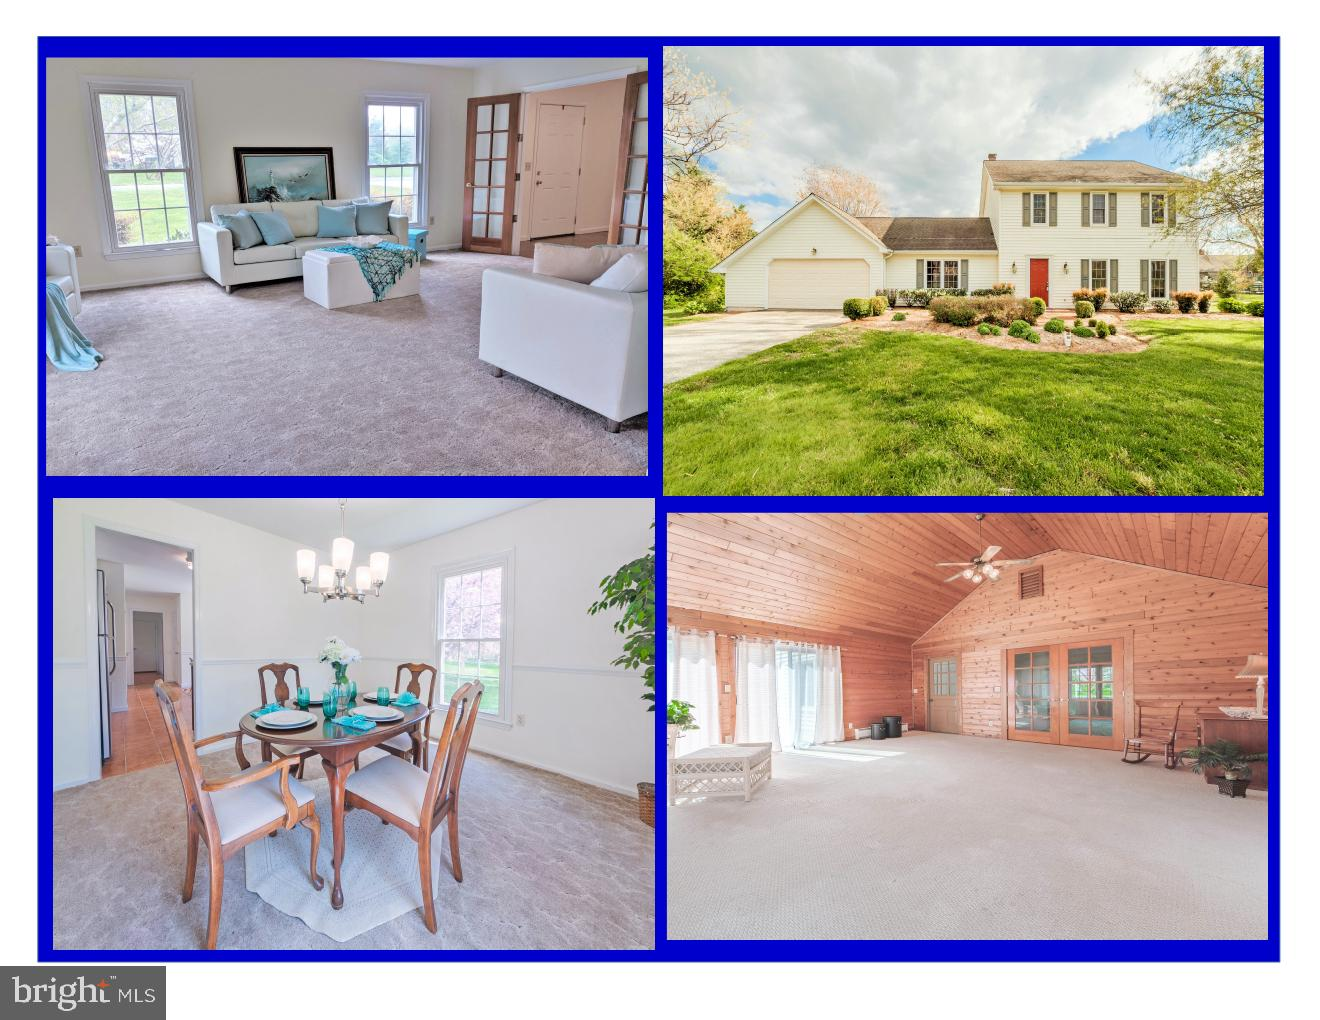 SOUGHT-AFTER COMMUNITY - Waterviews & Sunsets - Lovely home includes wonderful sunroom  with vaulted ceiling, 4 Brs, 2.5 Baths, Family room with vaulted ceiling next to half bath could be 1st-floor bedroom, formal living and dining rooms and eat-in kitchen featuring stainless appliances.